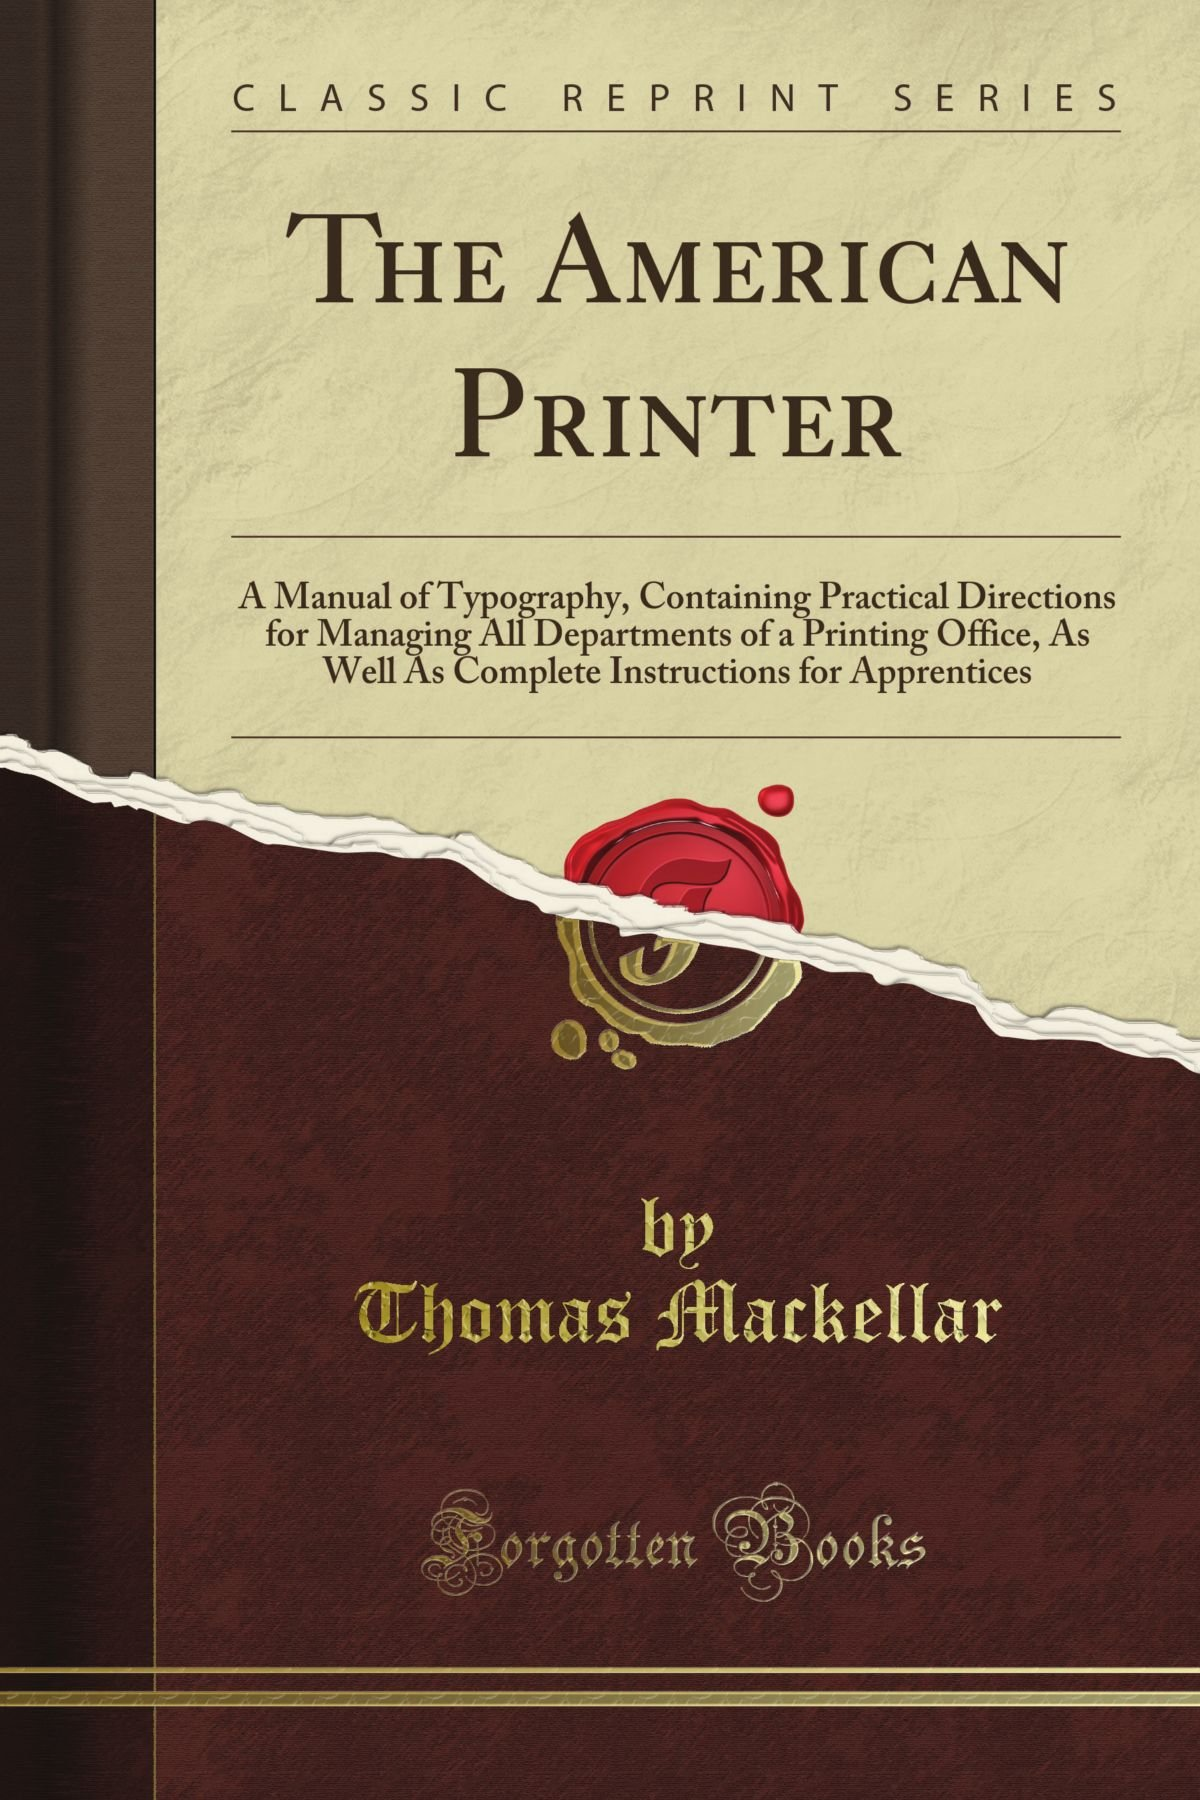 Read Online The American Printer: A Manual of Typography, Containing Practical Directions for Managing All Departments of a Printing Office, As Well As Complete Instructions for Apprentices (Classic Reprint) PDF